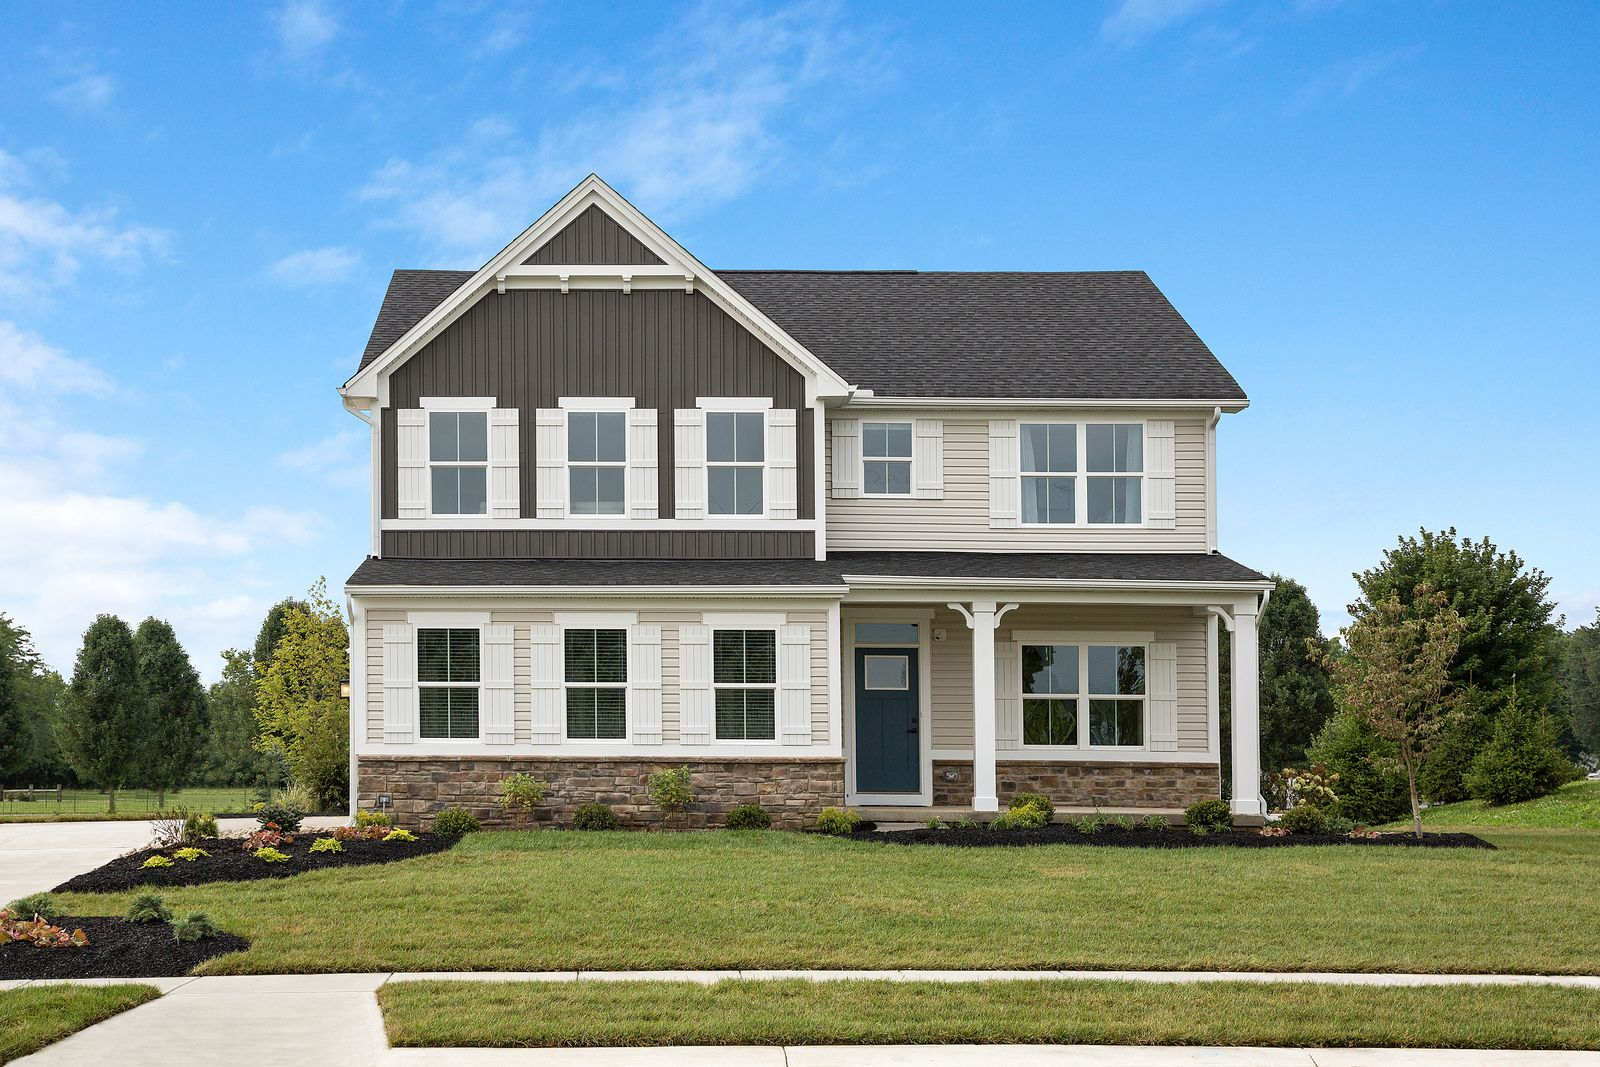 Rooted in Eastern Henrico, Inspired by You, Built by Ryan Homes:Yes, we are open and we're taking extra precautions to ensure your peace of mind. Come see us orclick here to schedule a visit today for an extra incentive!